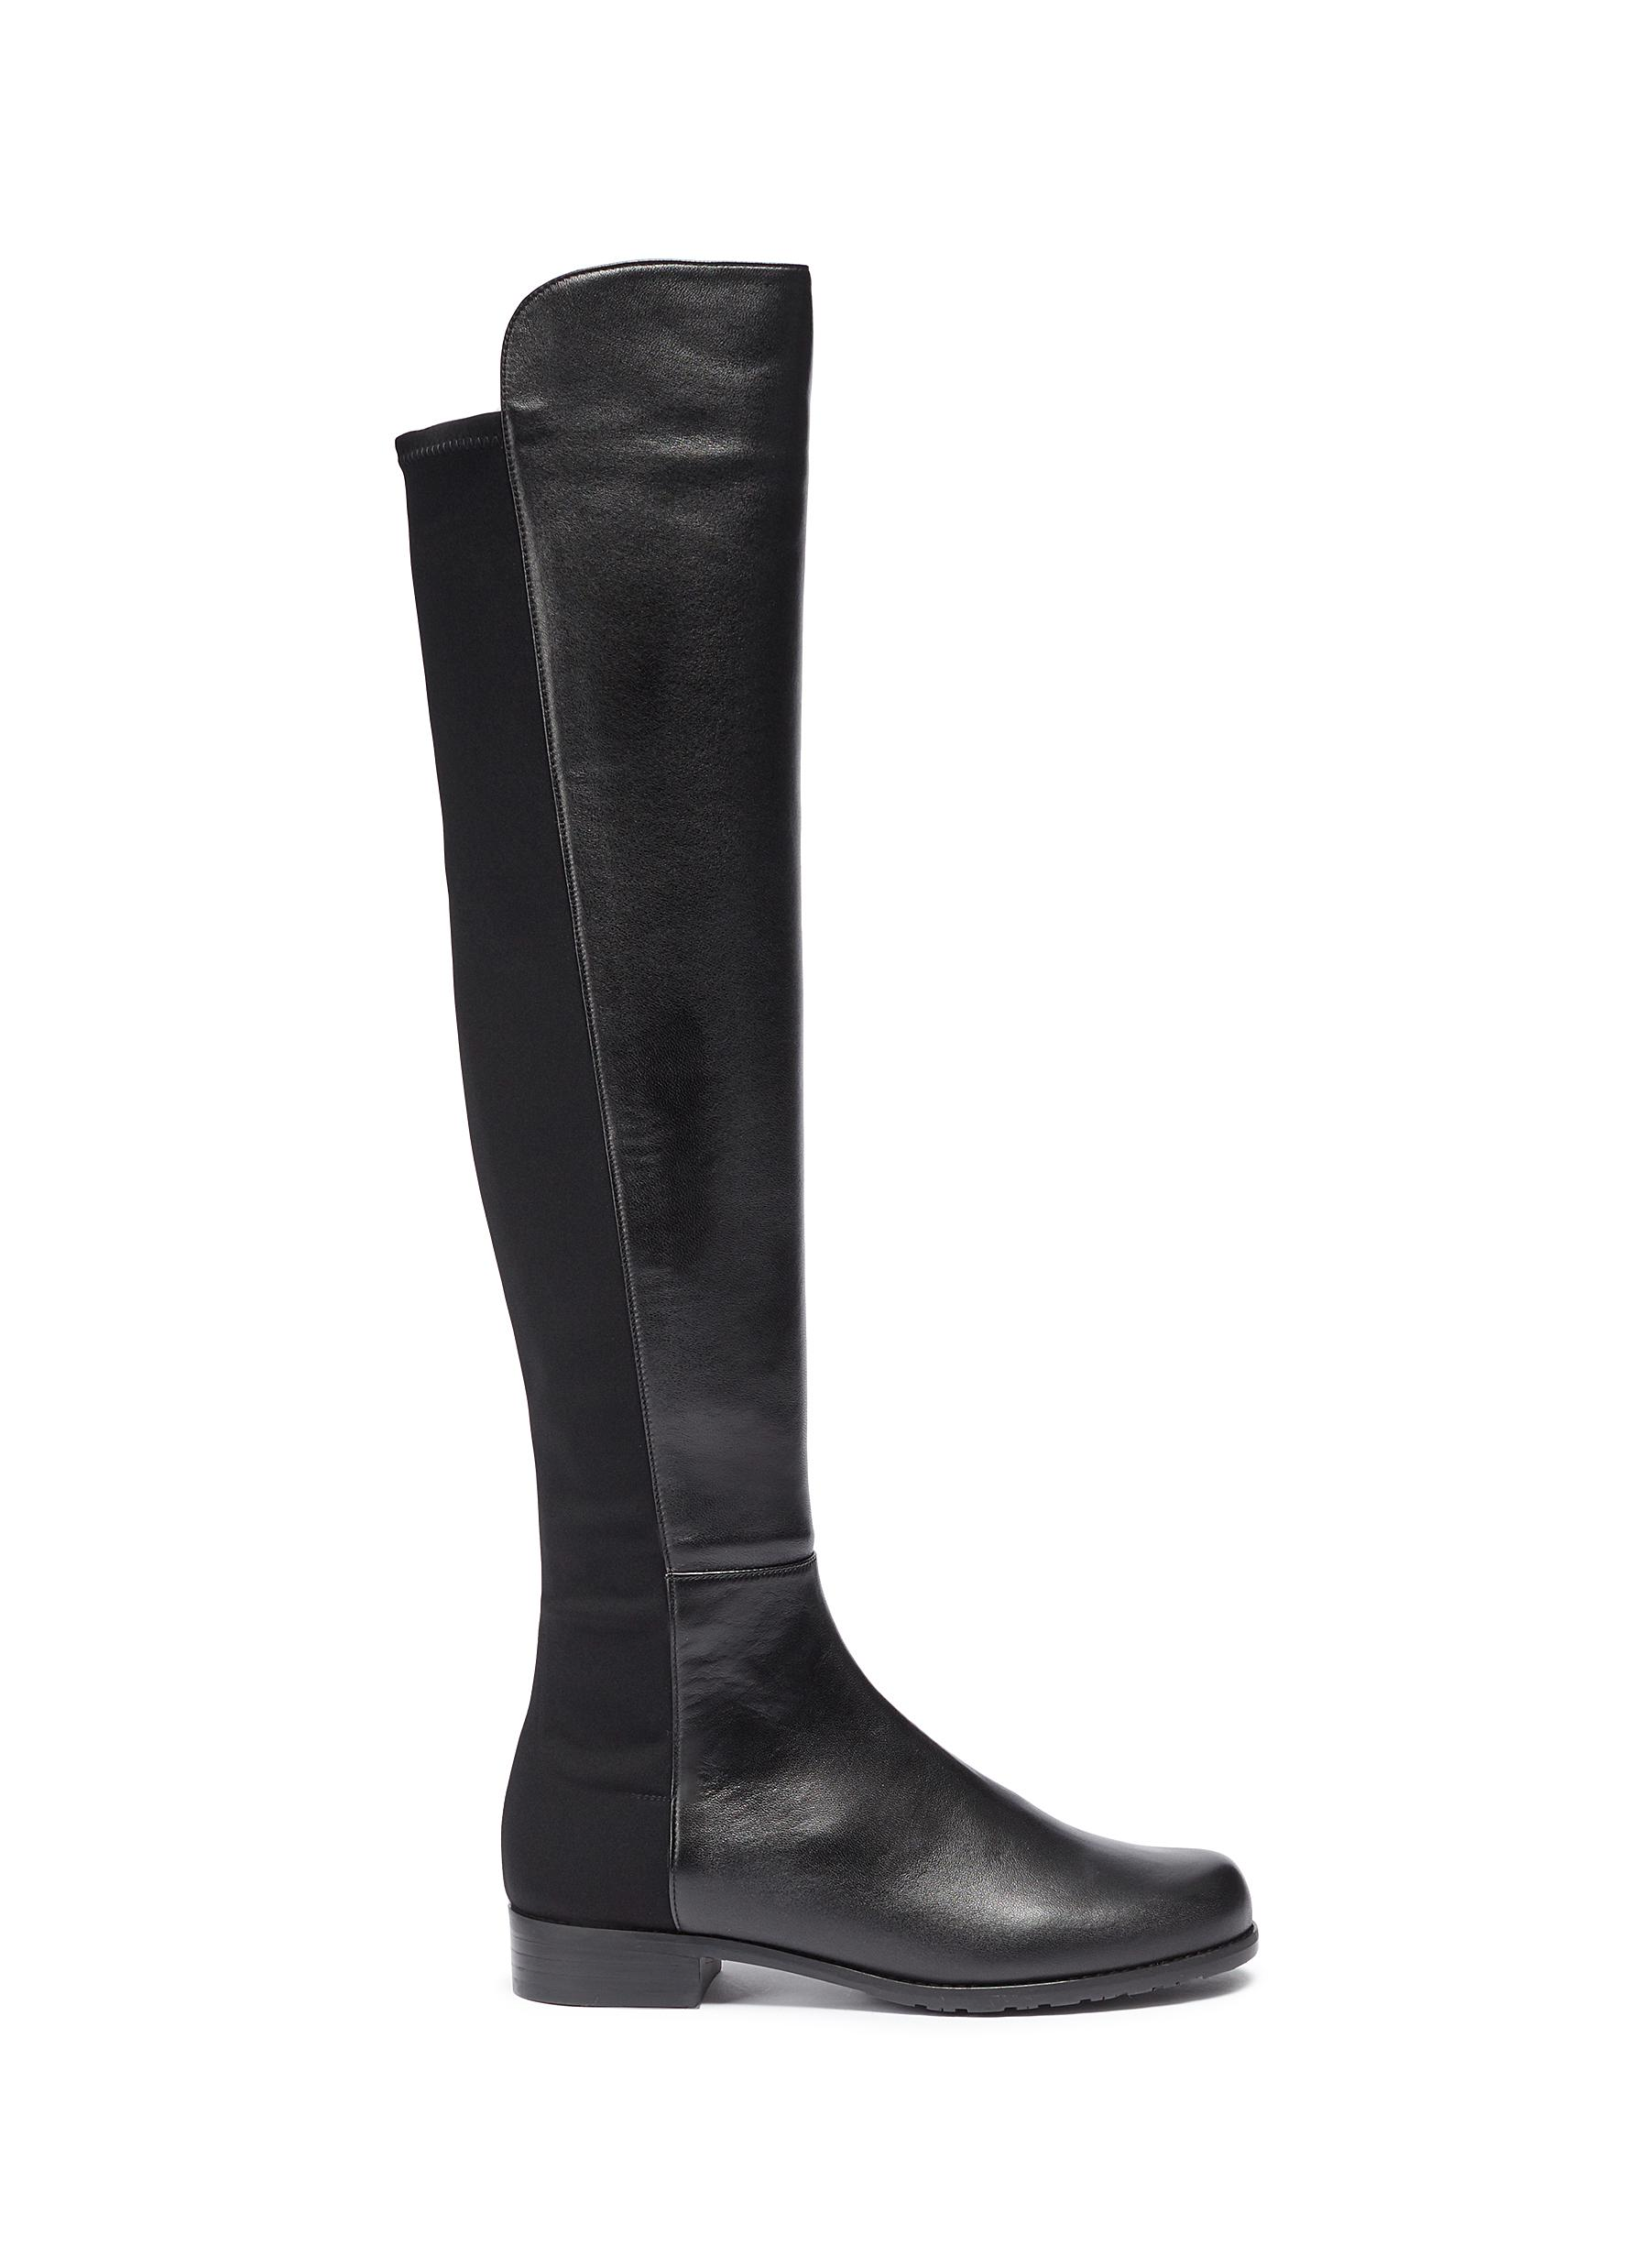 shop Stuart Weitzman '5050' leather knee high boots online